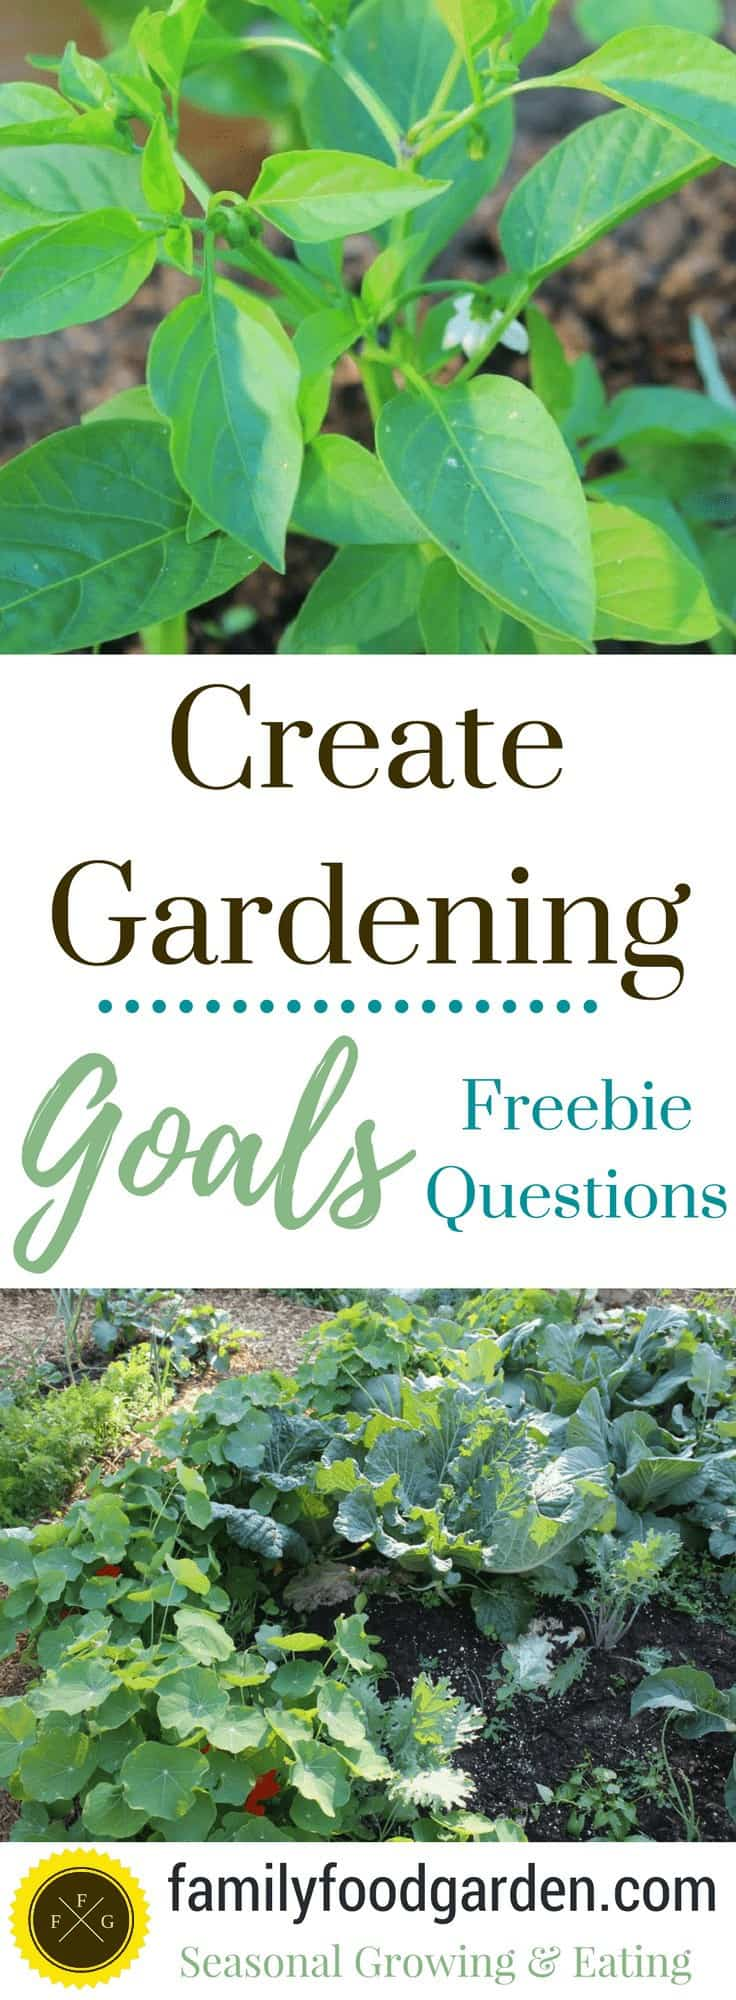 Some questions to help you create gardening goals for the year!